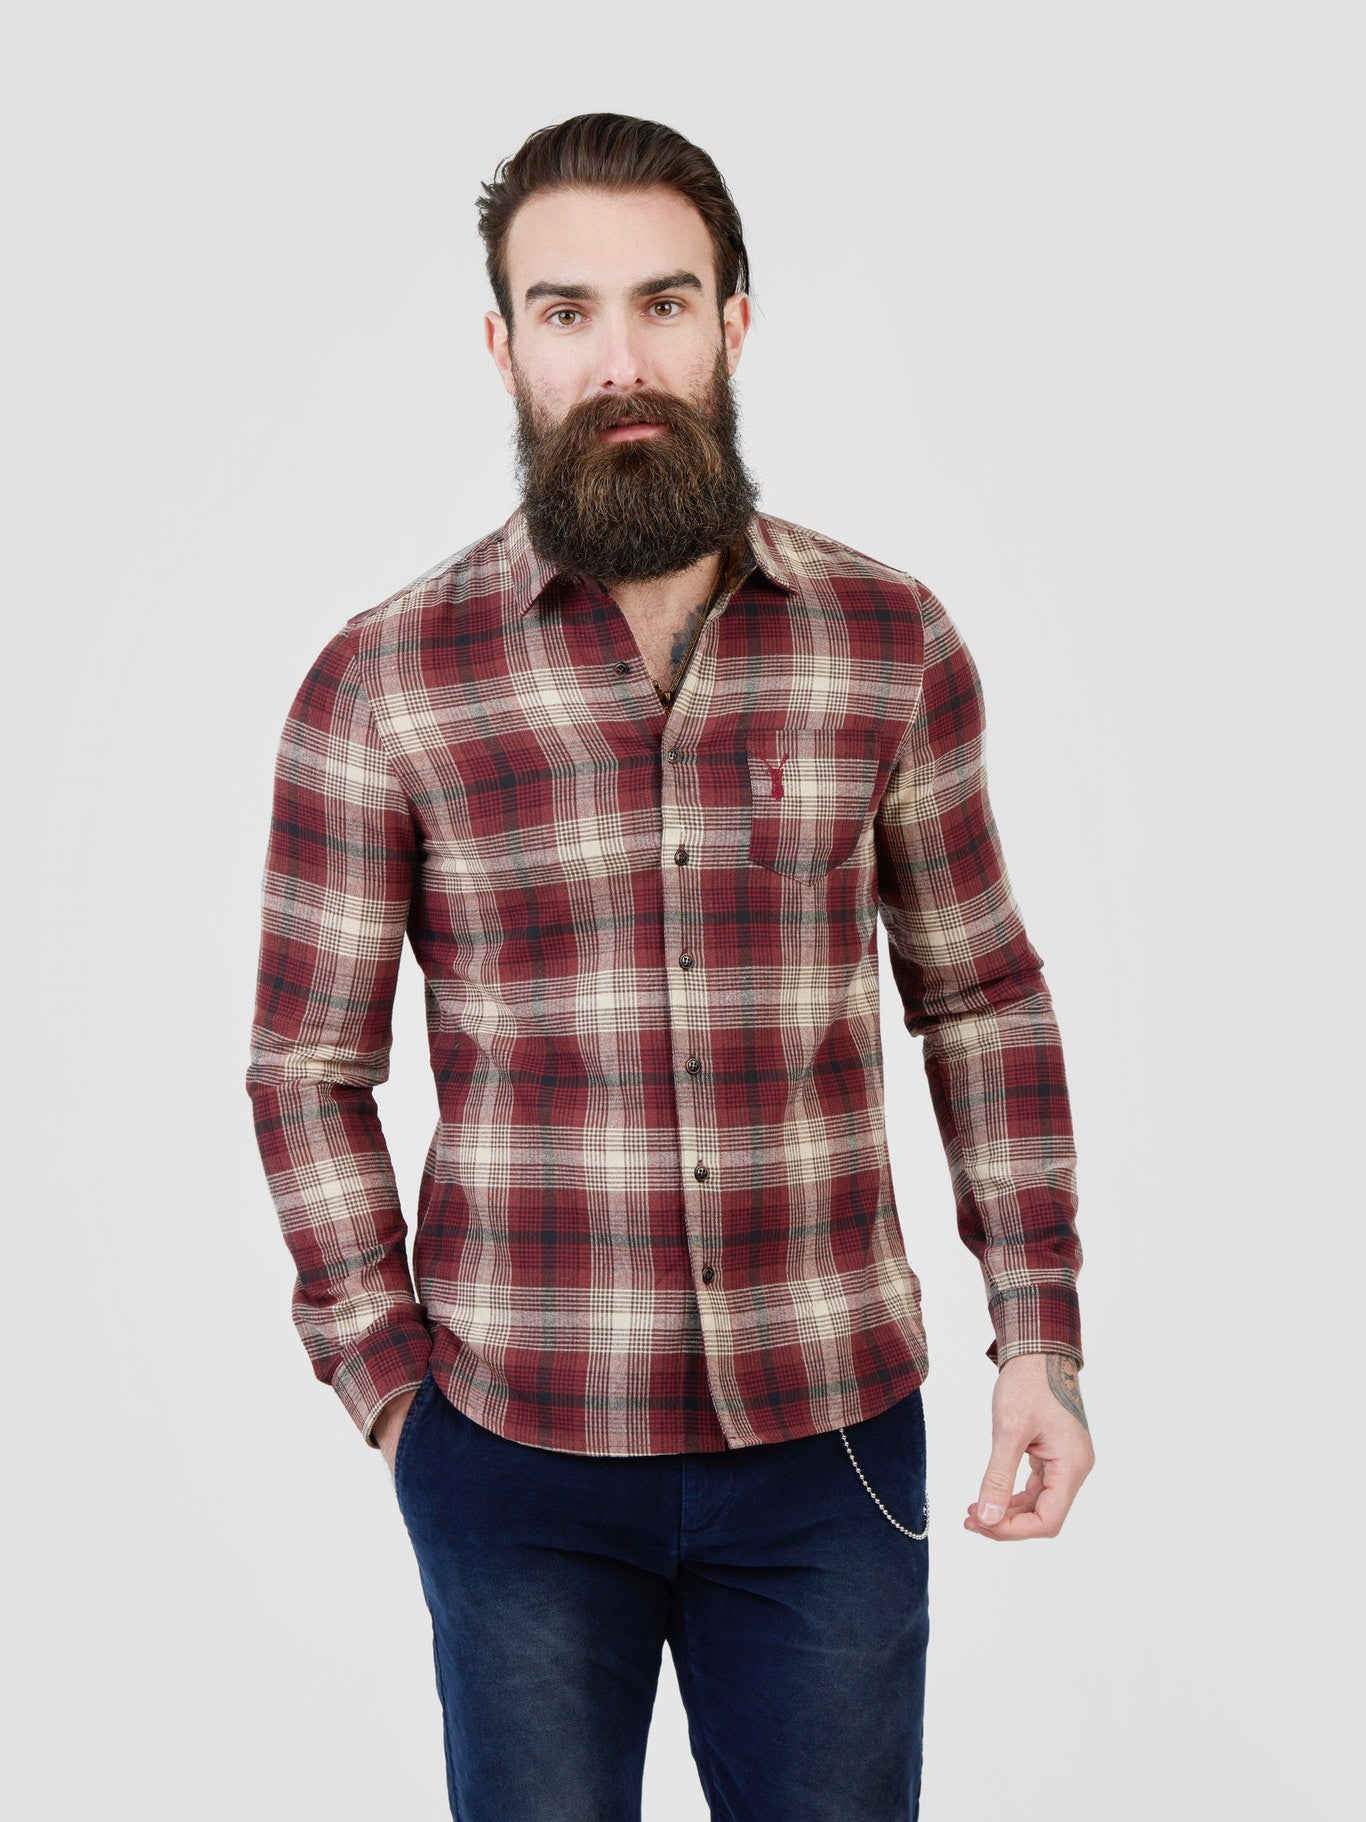 Pearly King - Attend Shirt - Red